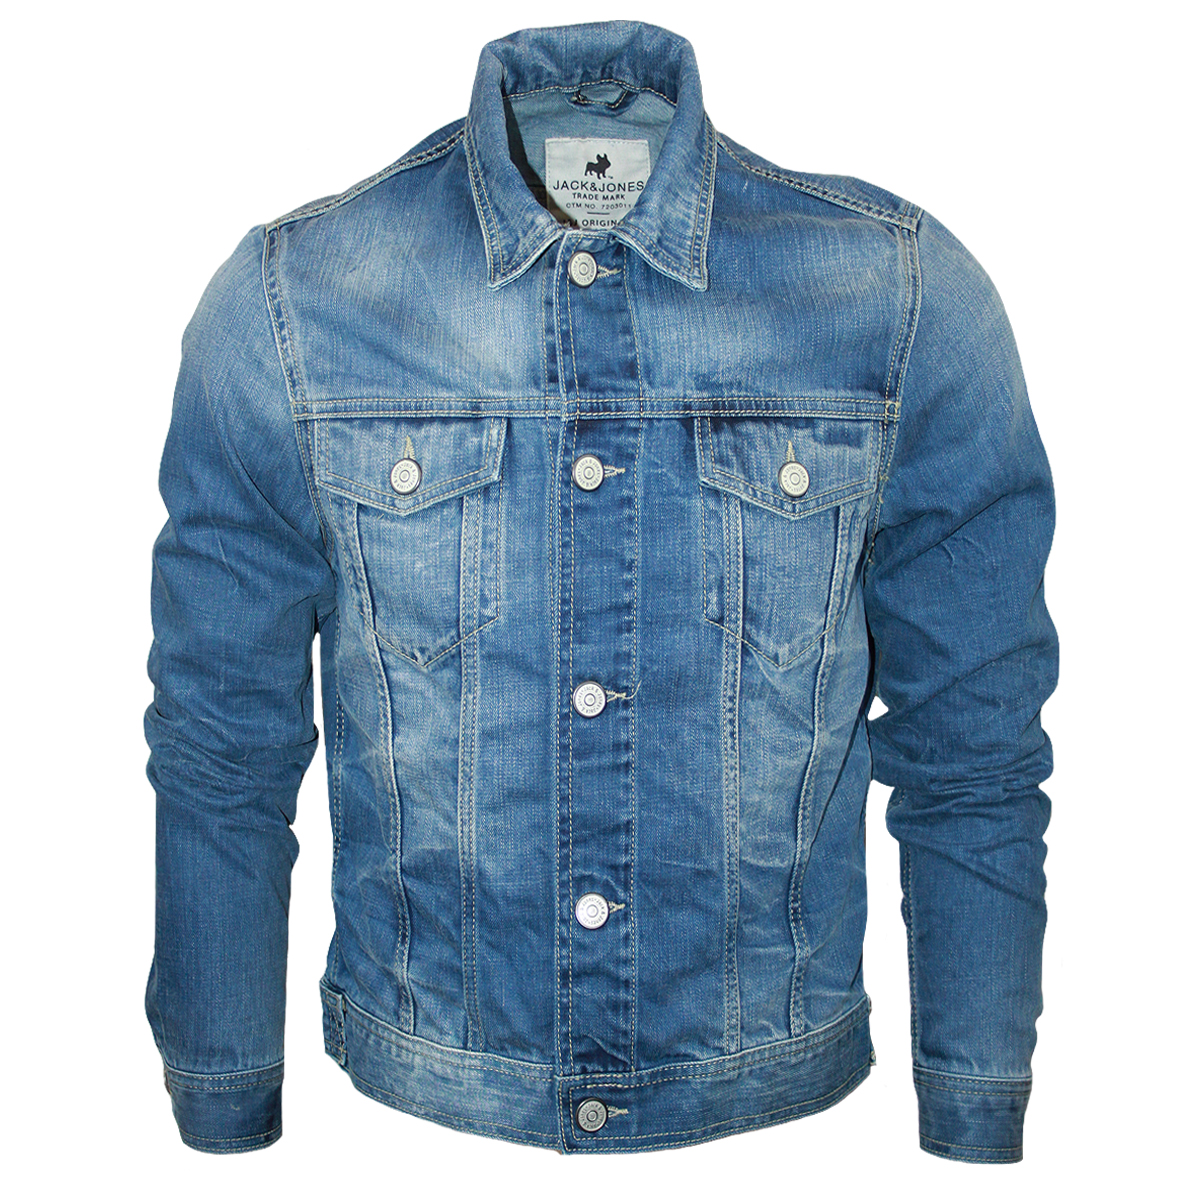 Choosing men's denim jackets. With a variety of styles to choose from, including Sherpa, stonewashed, dark wash, or unlined choices, you'll find a denim jacket tocomplementyour wardrobe and elevate your look. Each jacket lets you approach your own stylein a new and unique way.